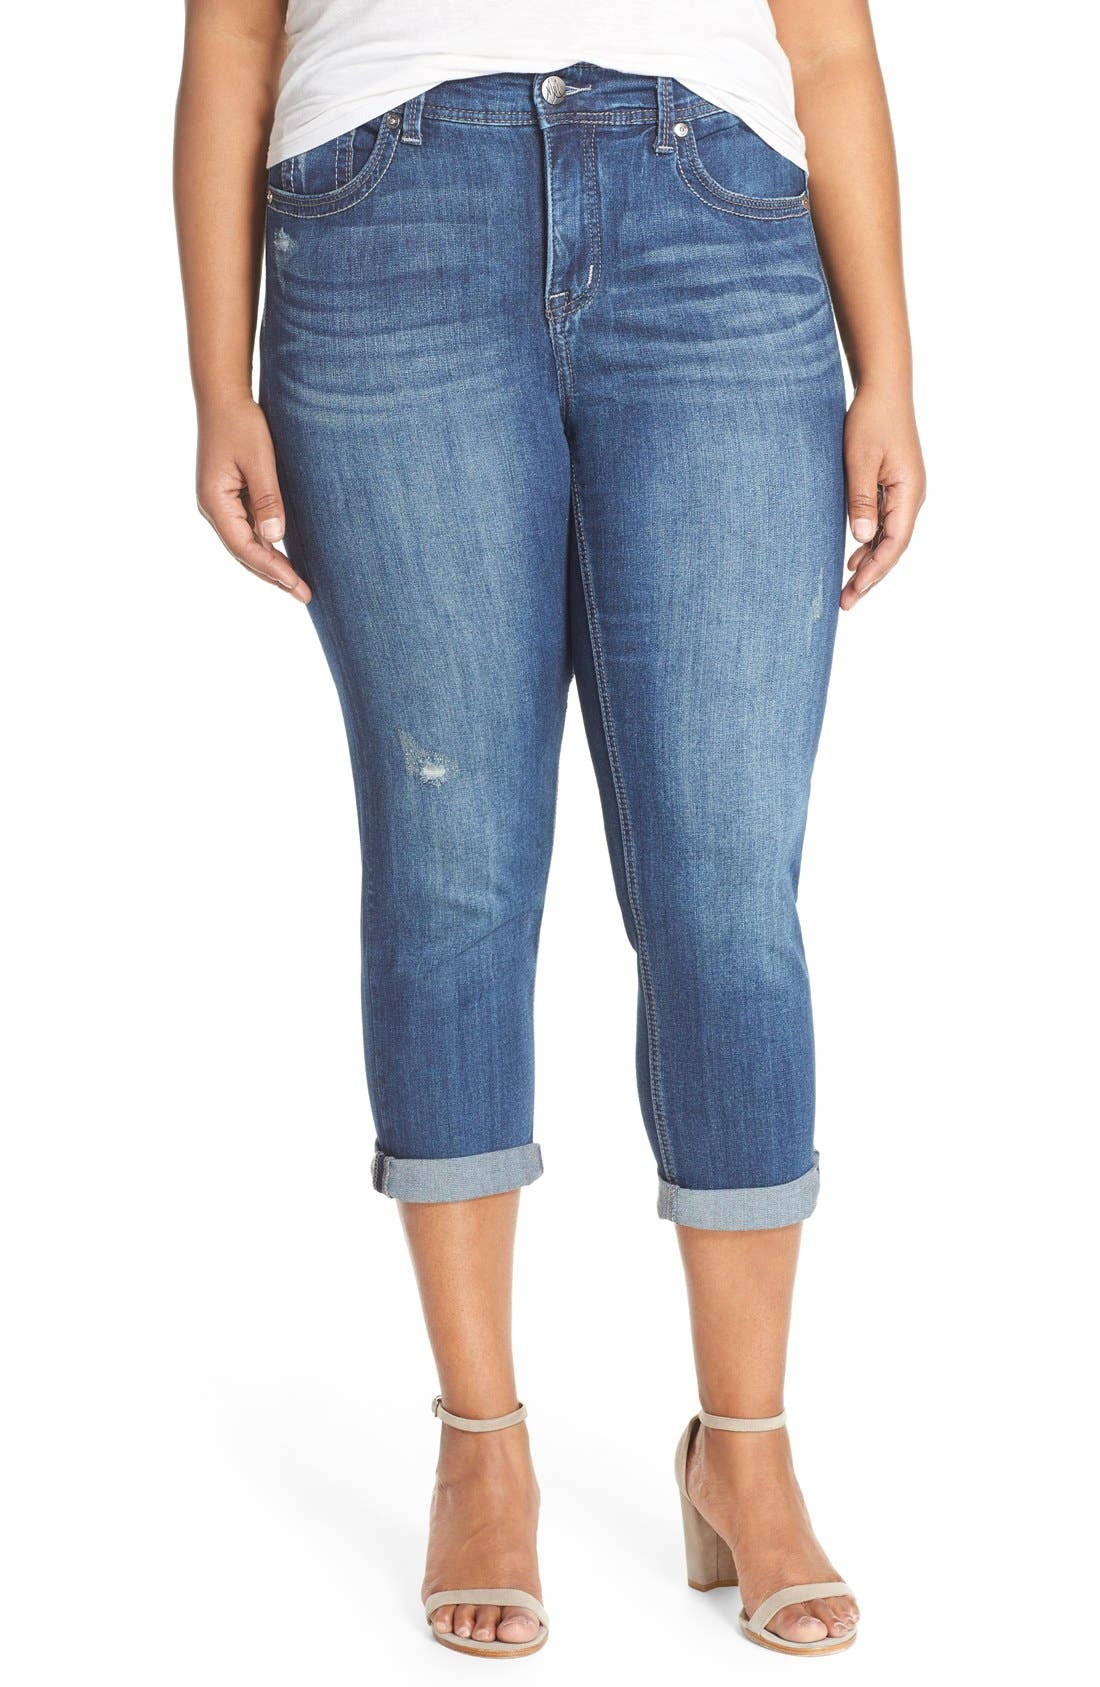 Alternate Image 1 Selected - Melissa McCarthy Seven7 Stretch Crop Jeans (Crosby) (Plus Size)